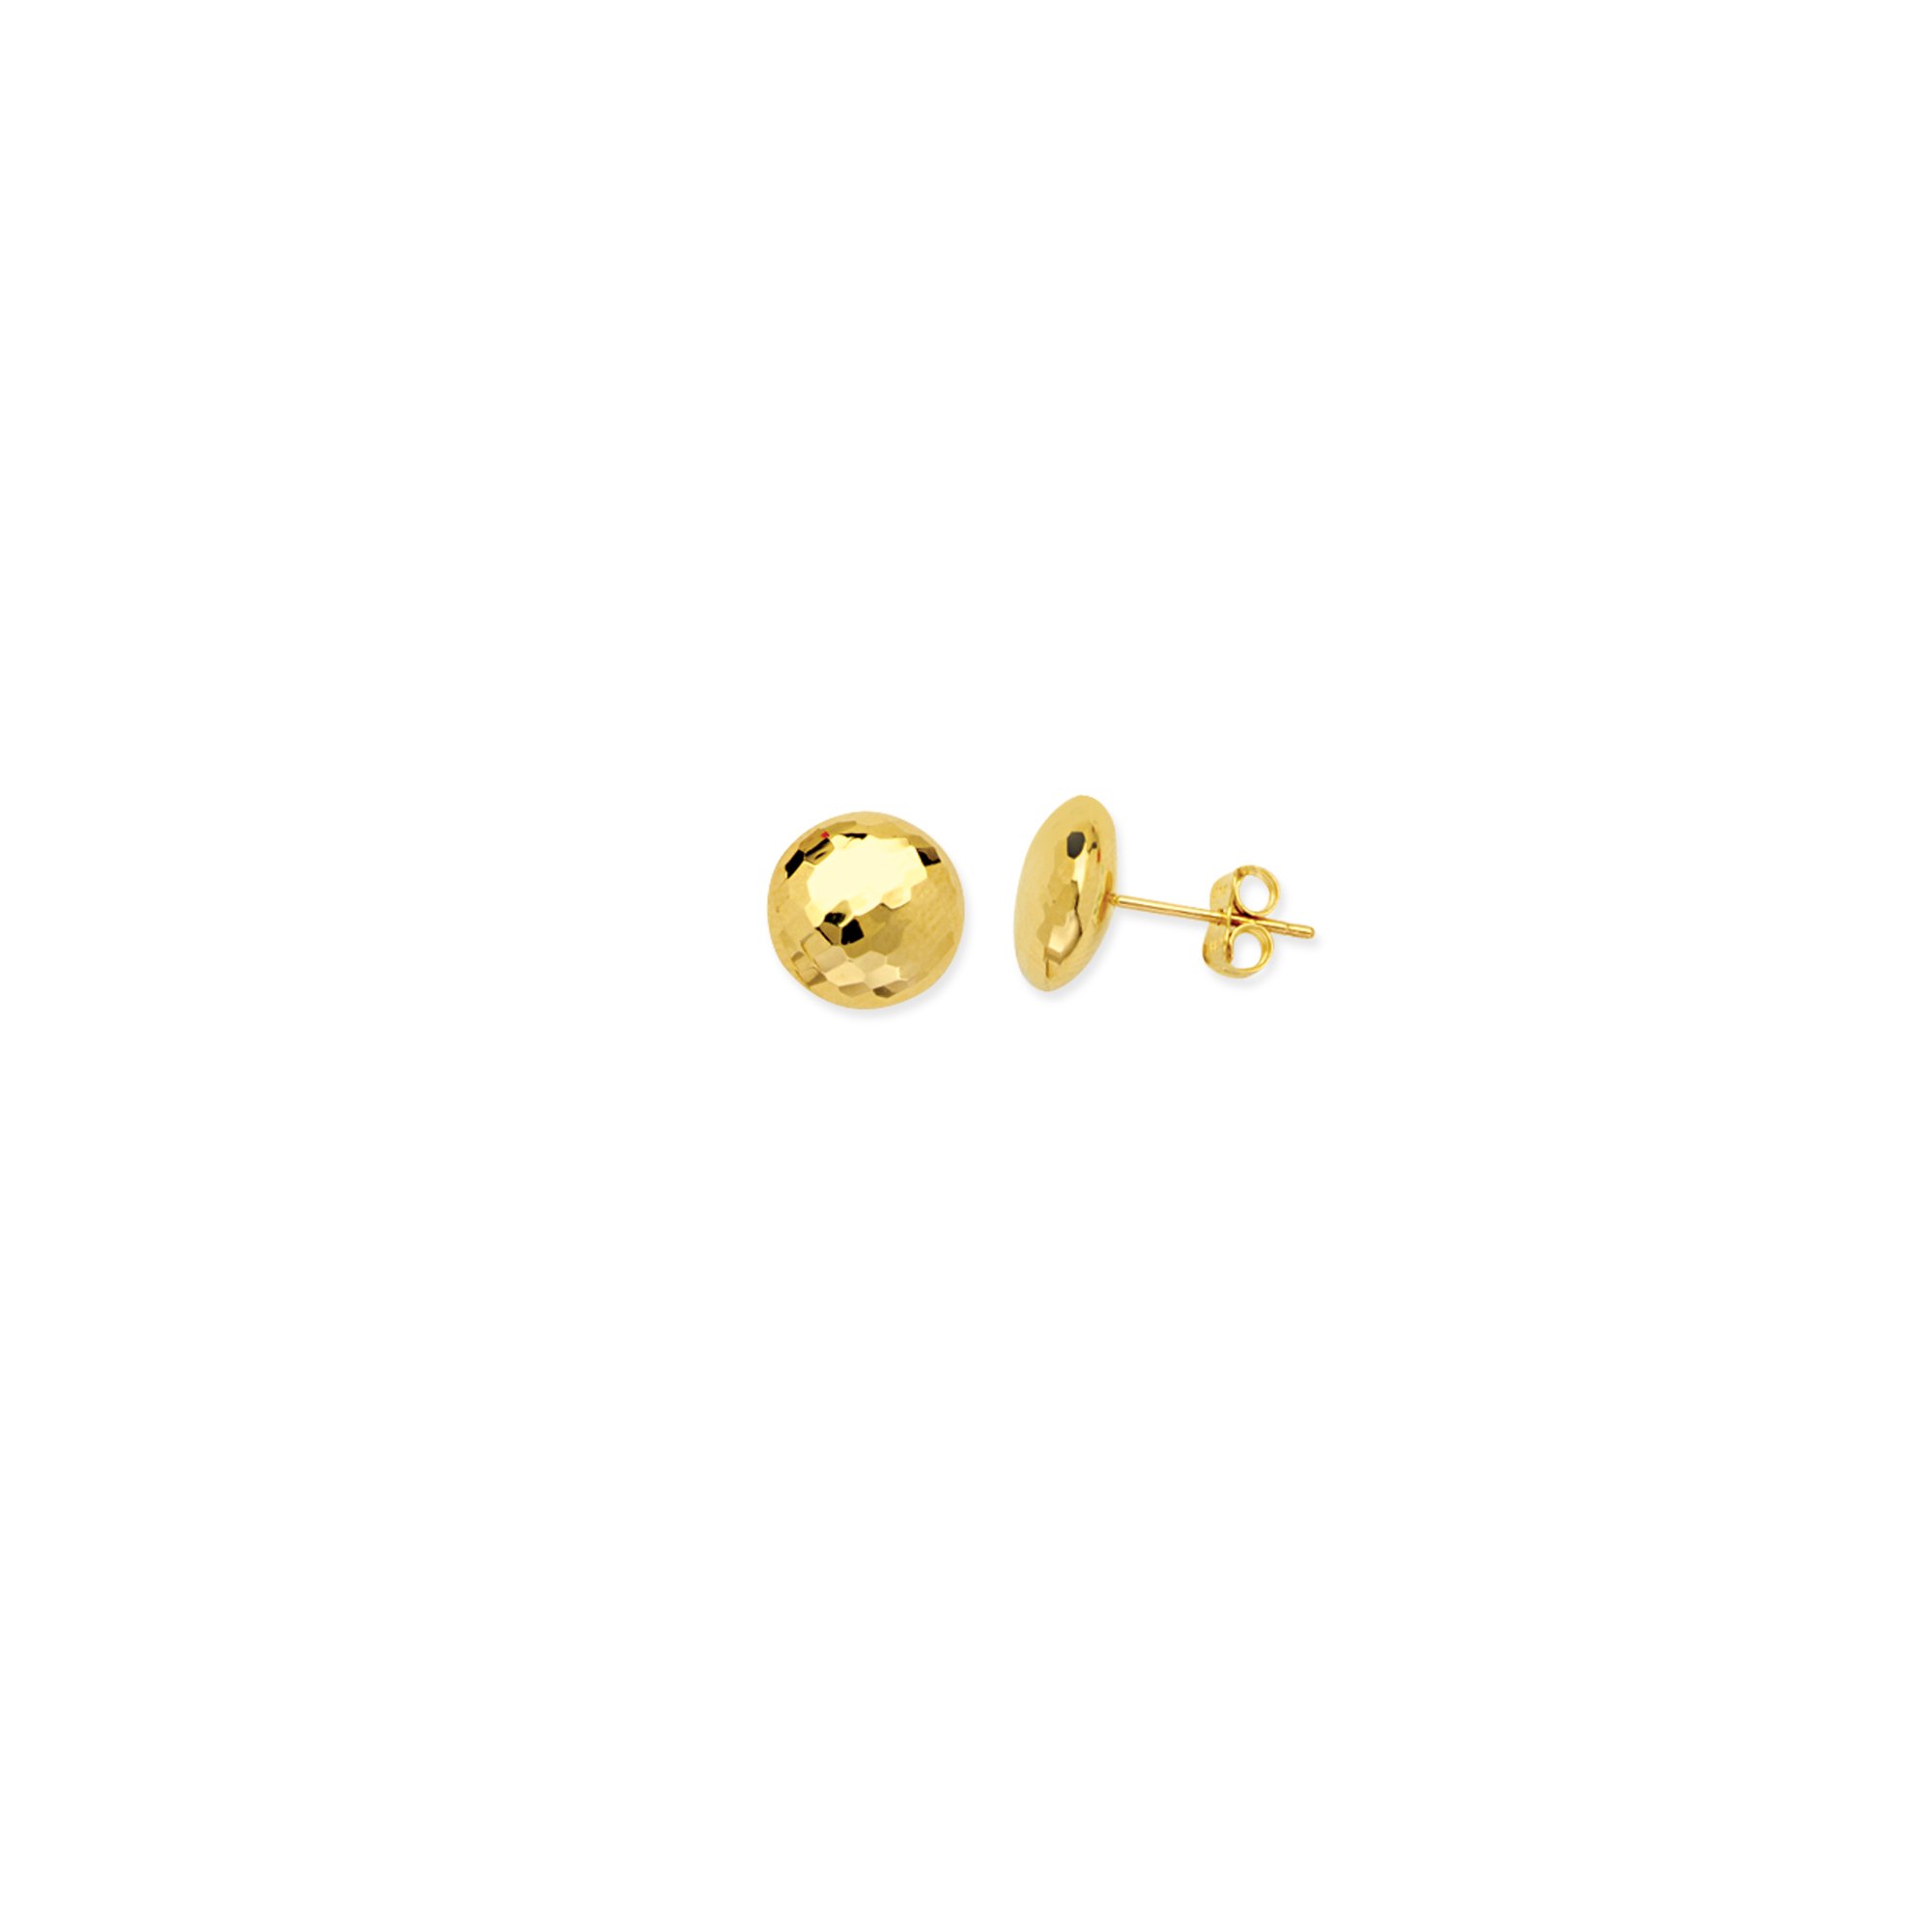 Button Earrings,  14Kt Gold  Button Earring